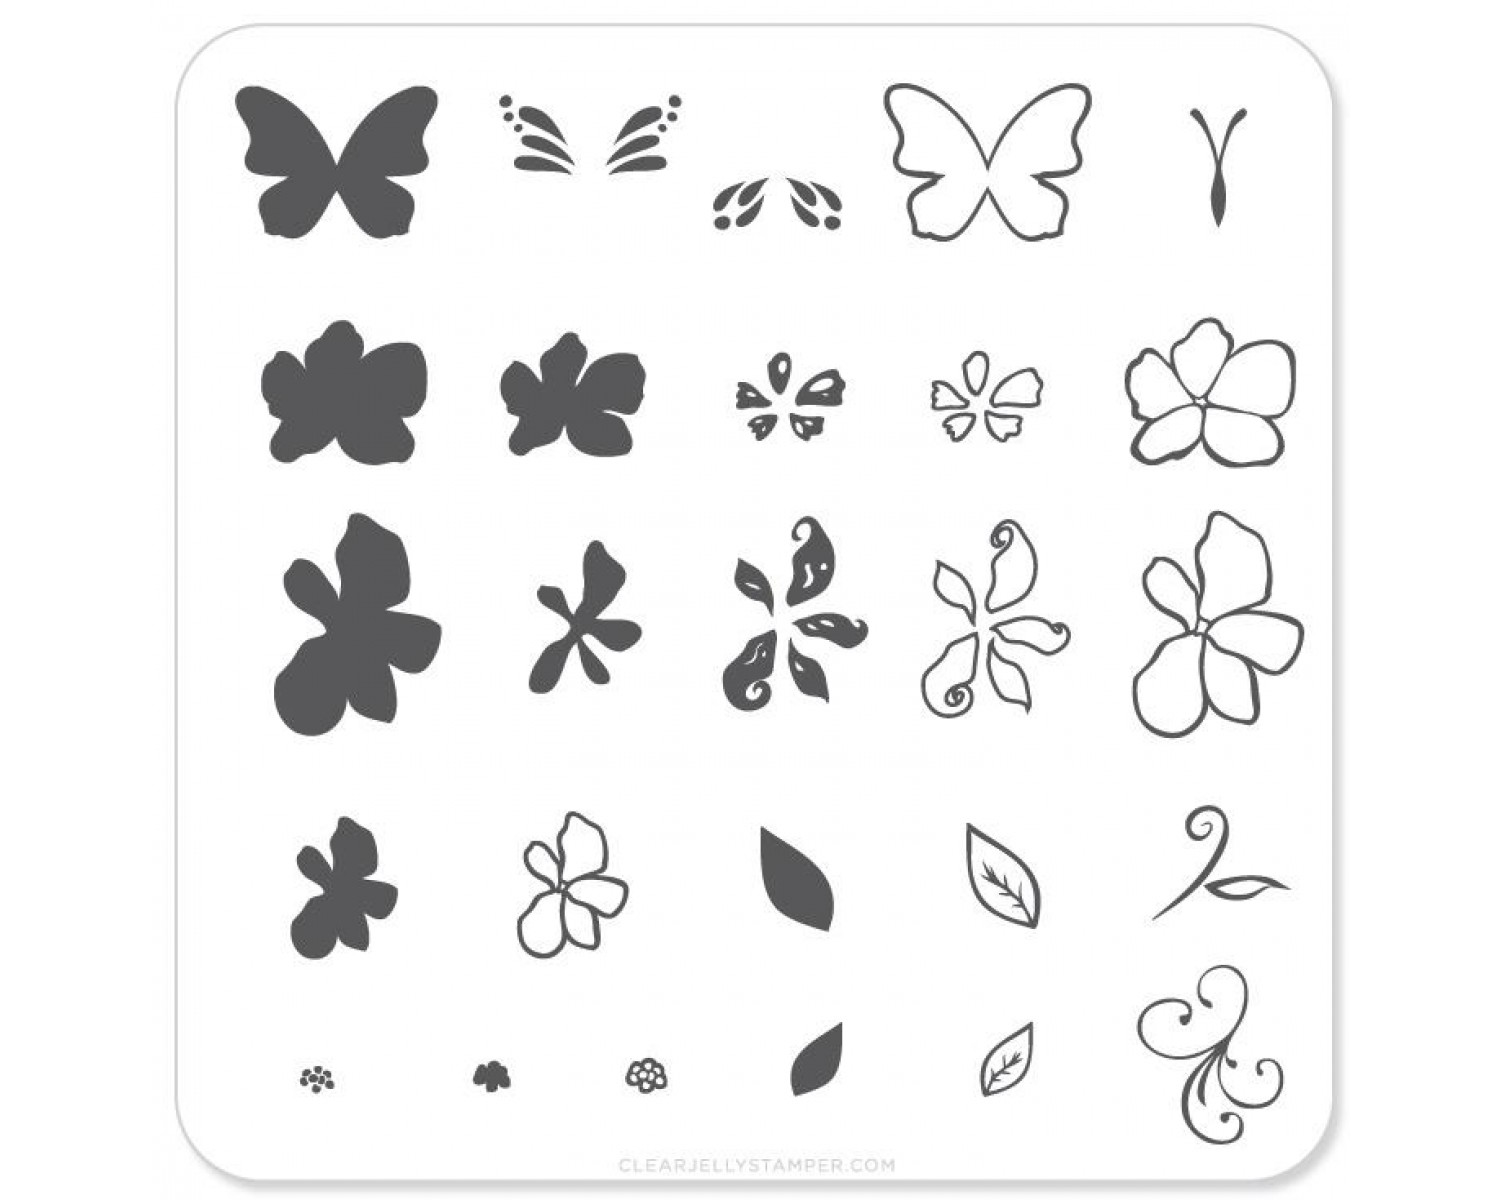 Clear Jelly Stamper - Flower and Butterfly